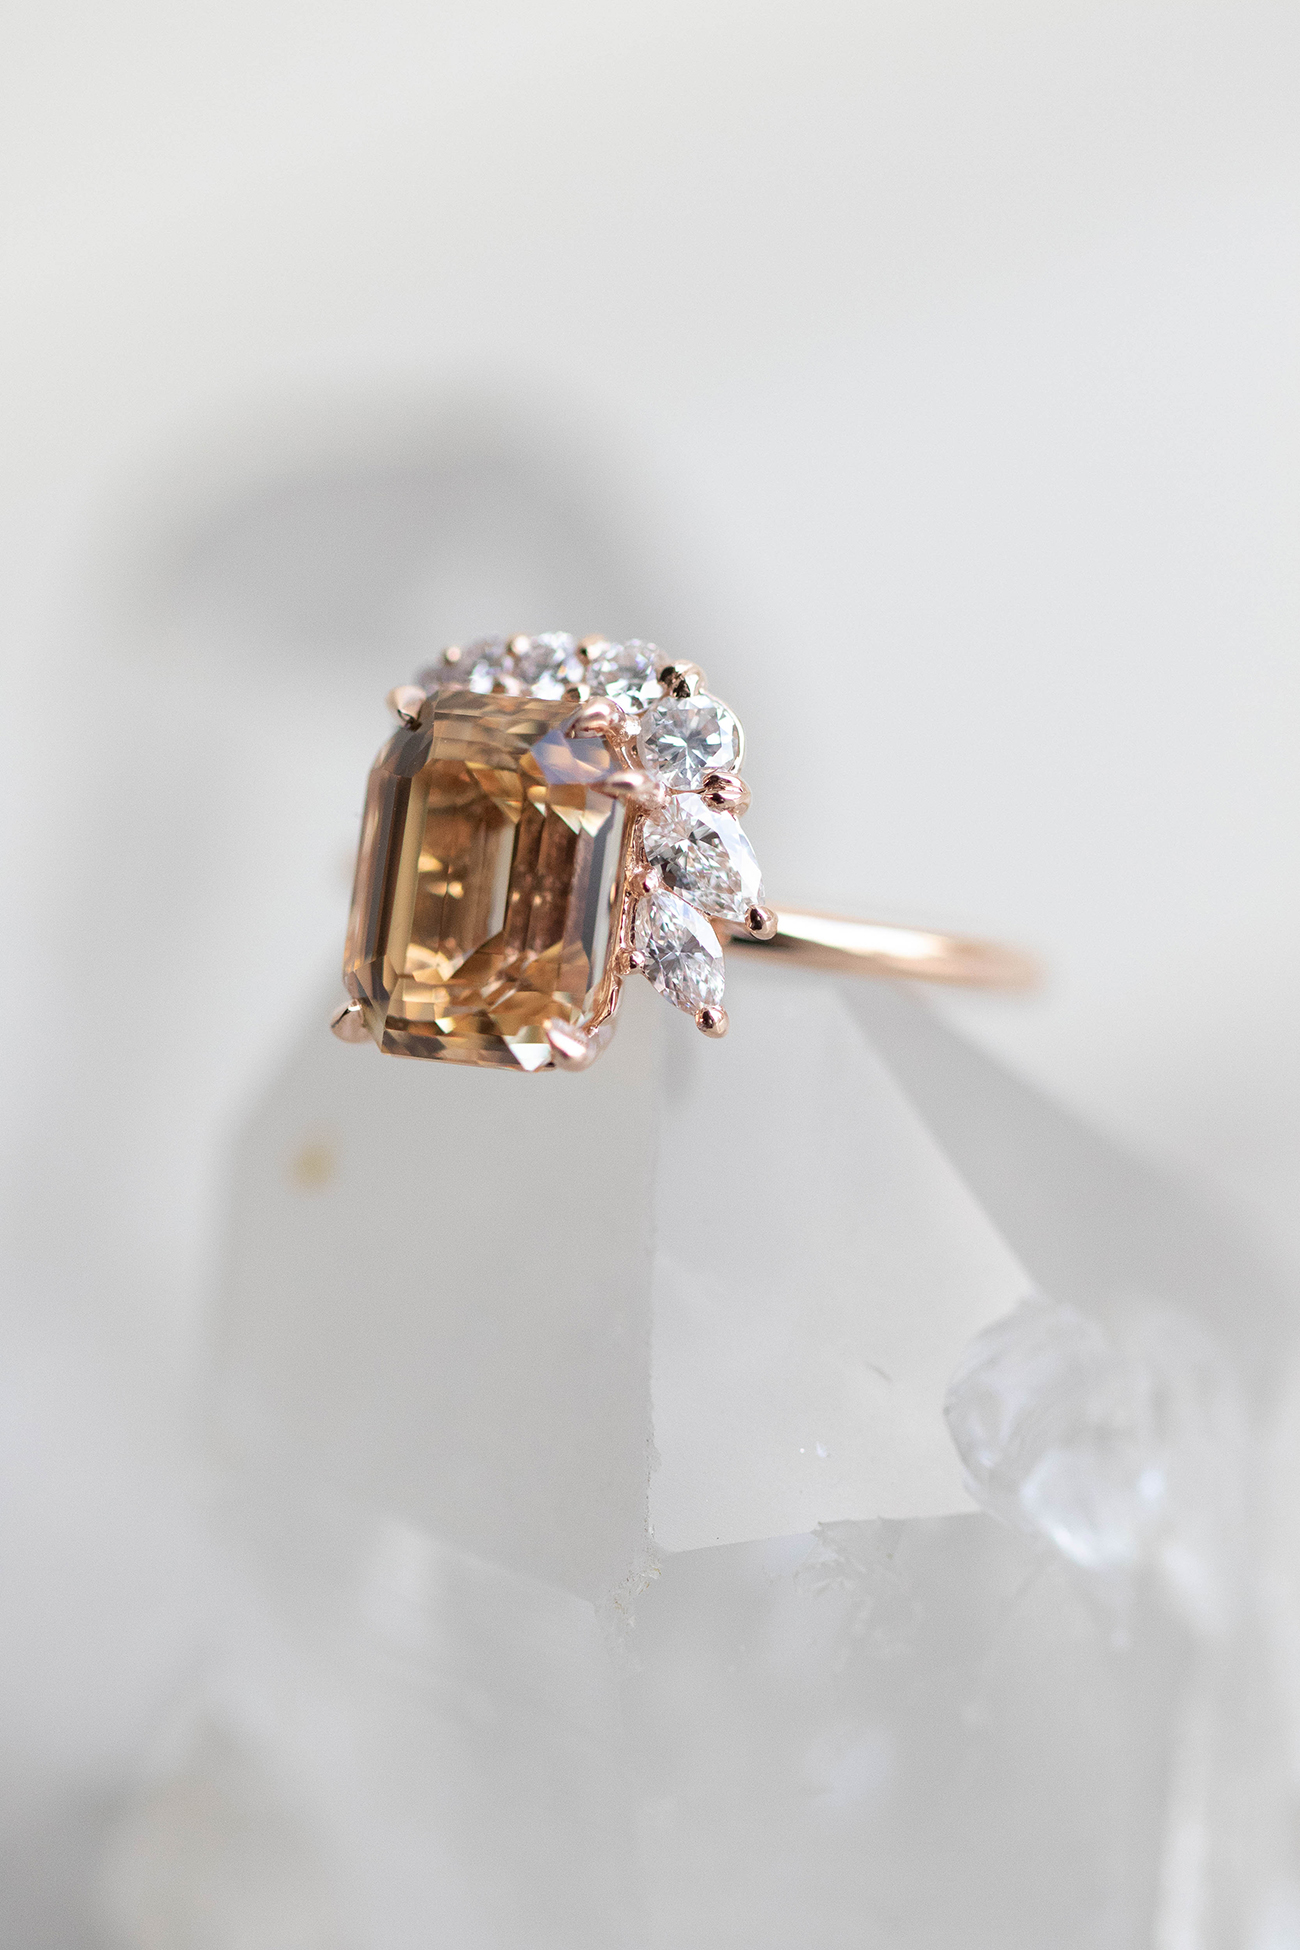 JOY in Apricot Sapphire and diamond ring